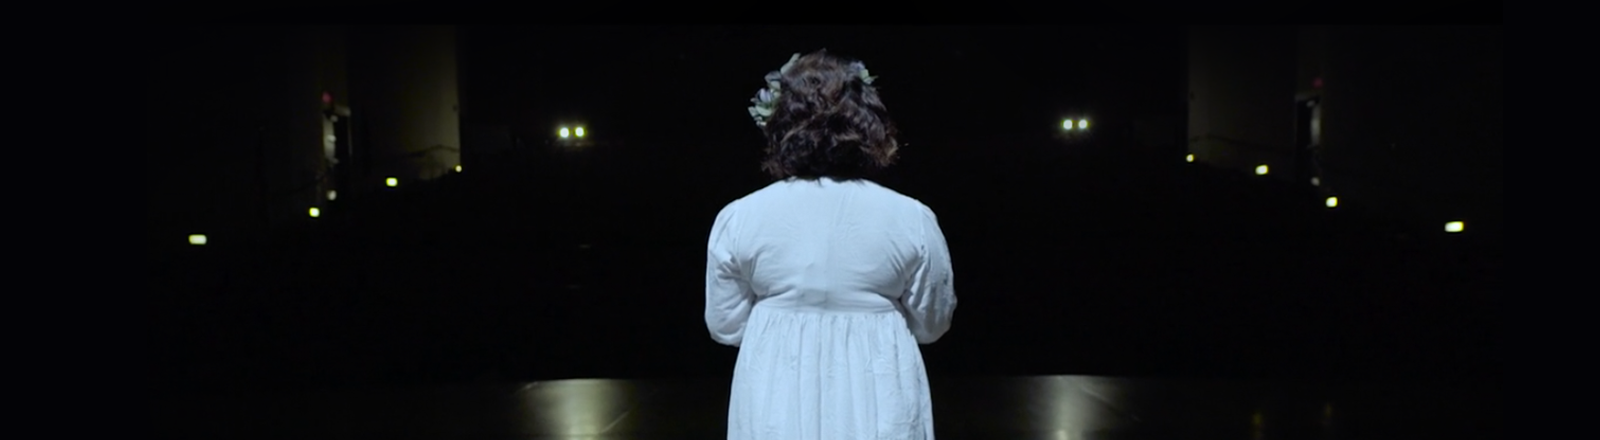 Still from student film Ophelia